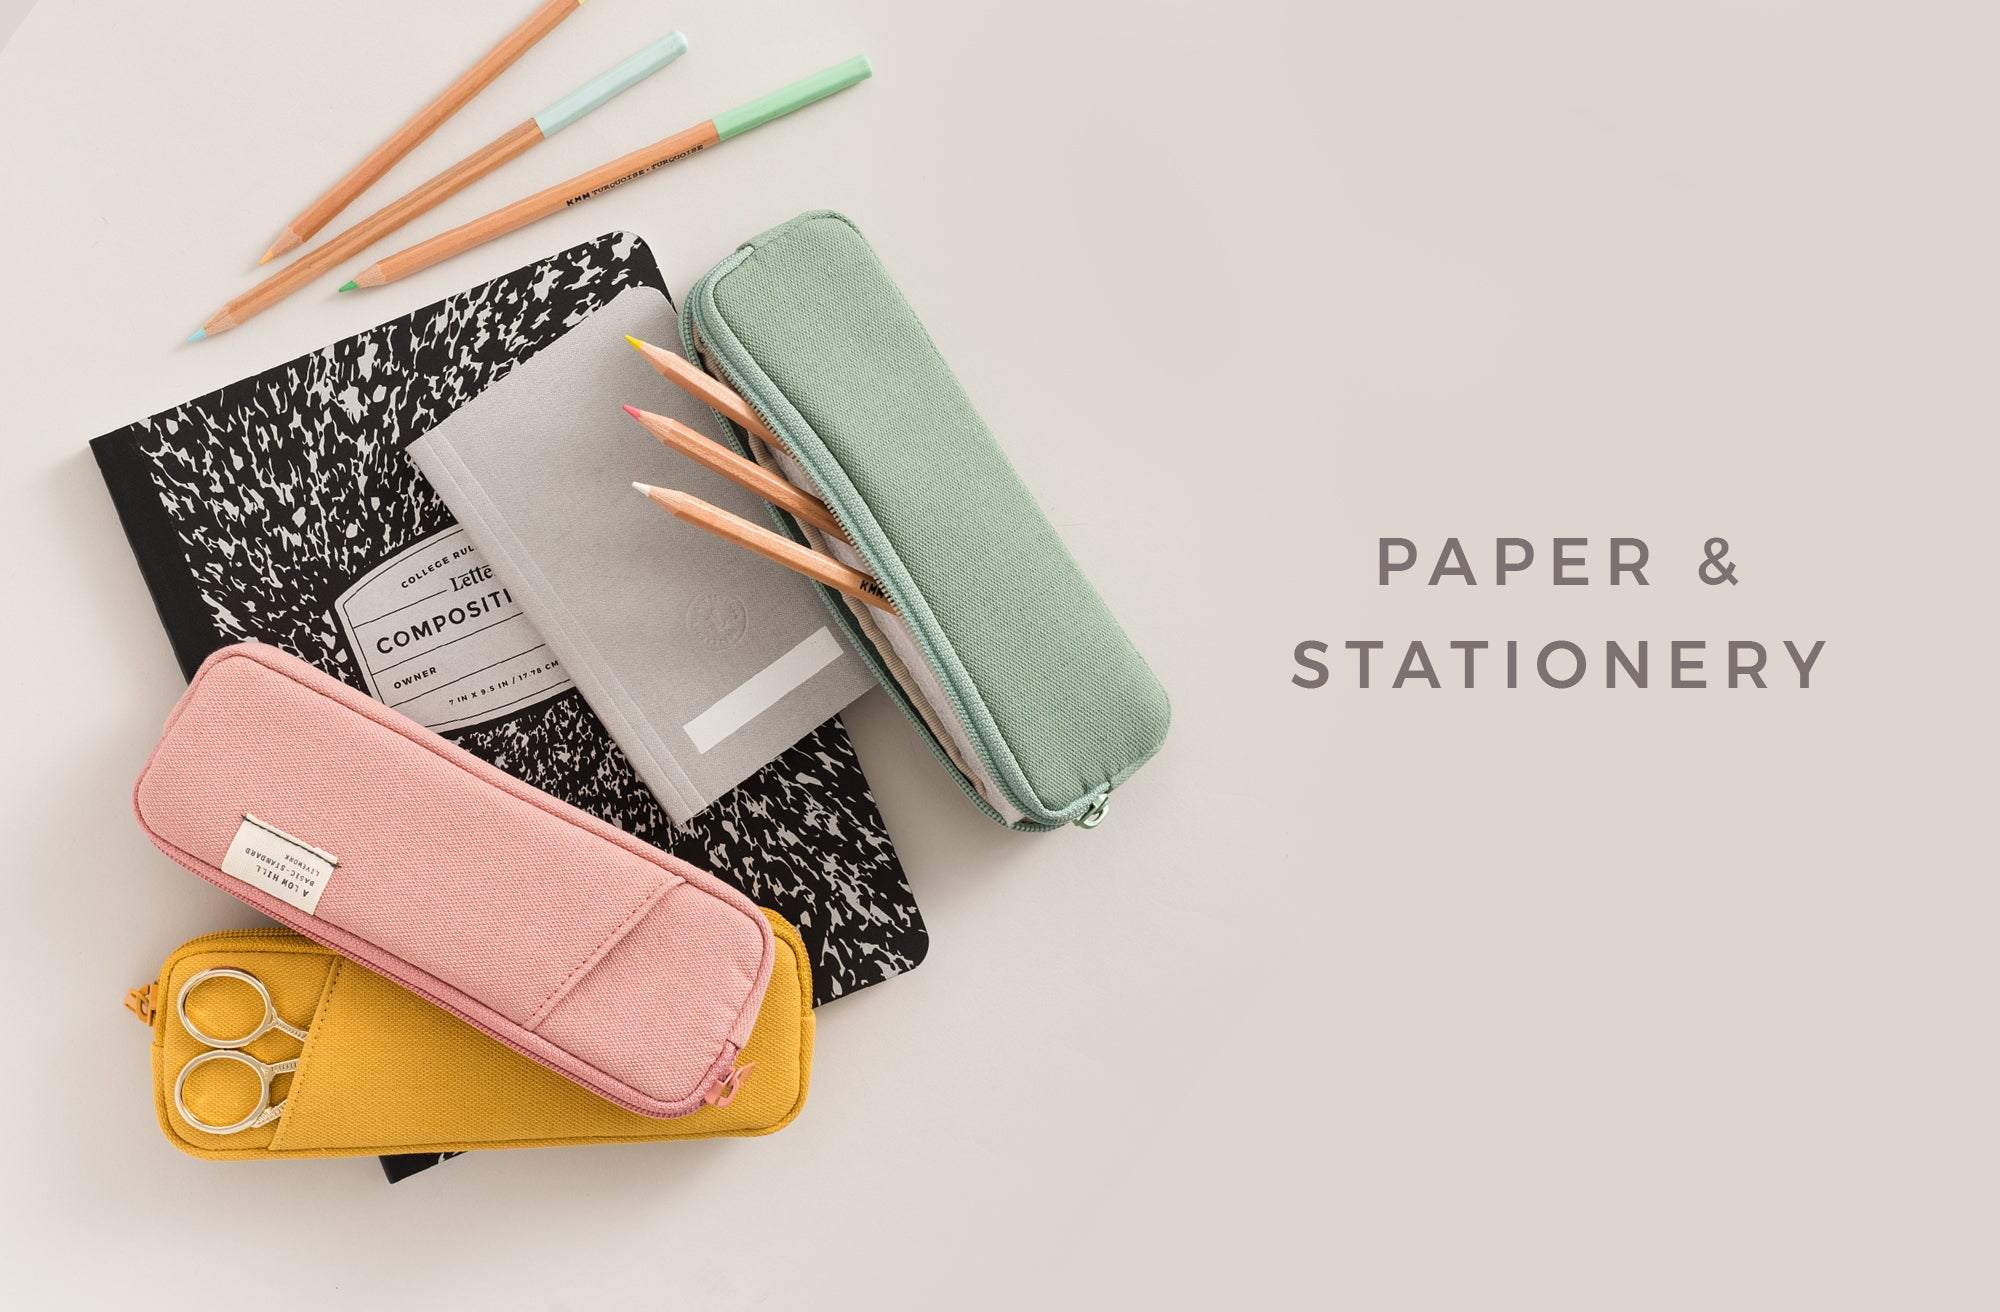 Paper & Stationery by Letterfolk